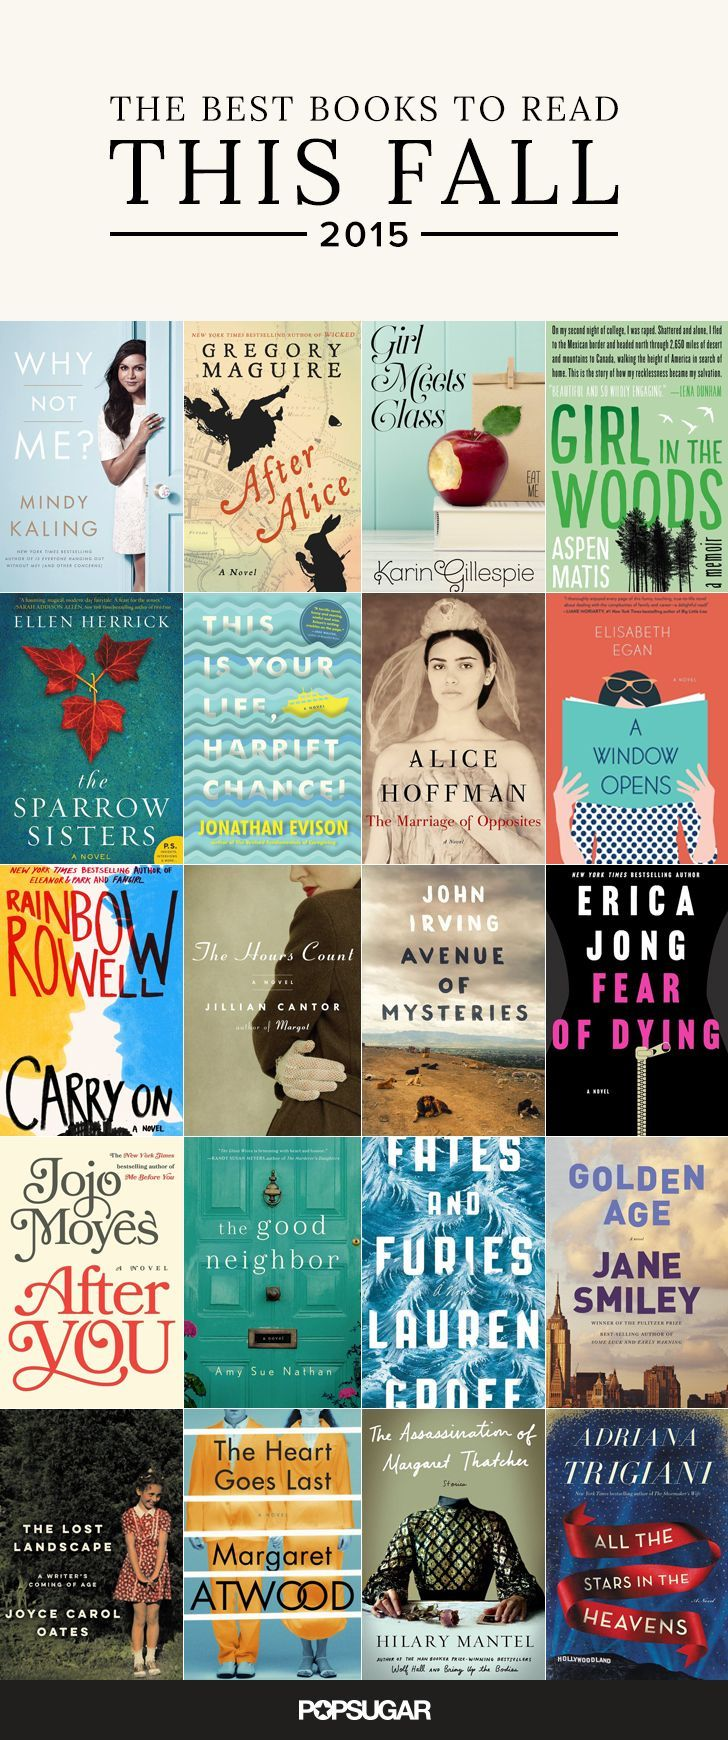 Curl up on the couch with a cup of tea and check out women's fiction author Brenda Janowitz's picks for the best new Fall books of 2015!